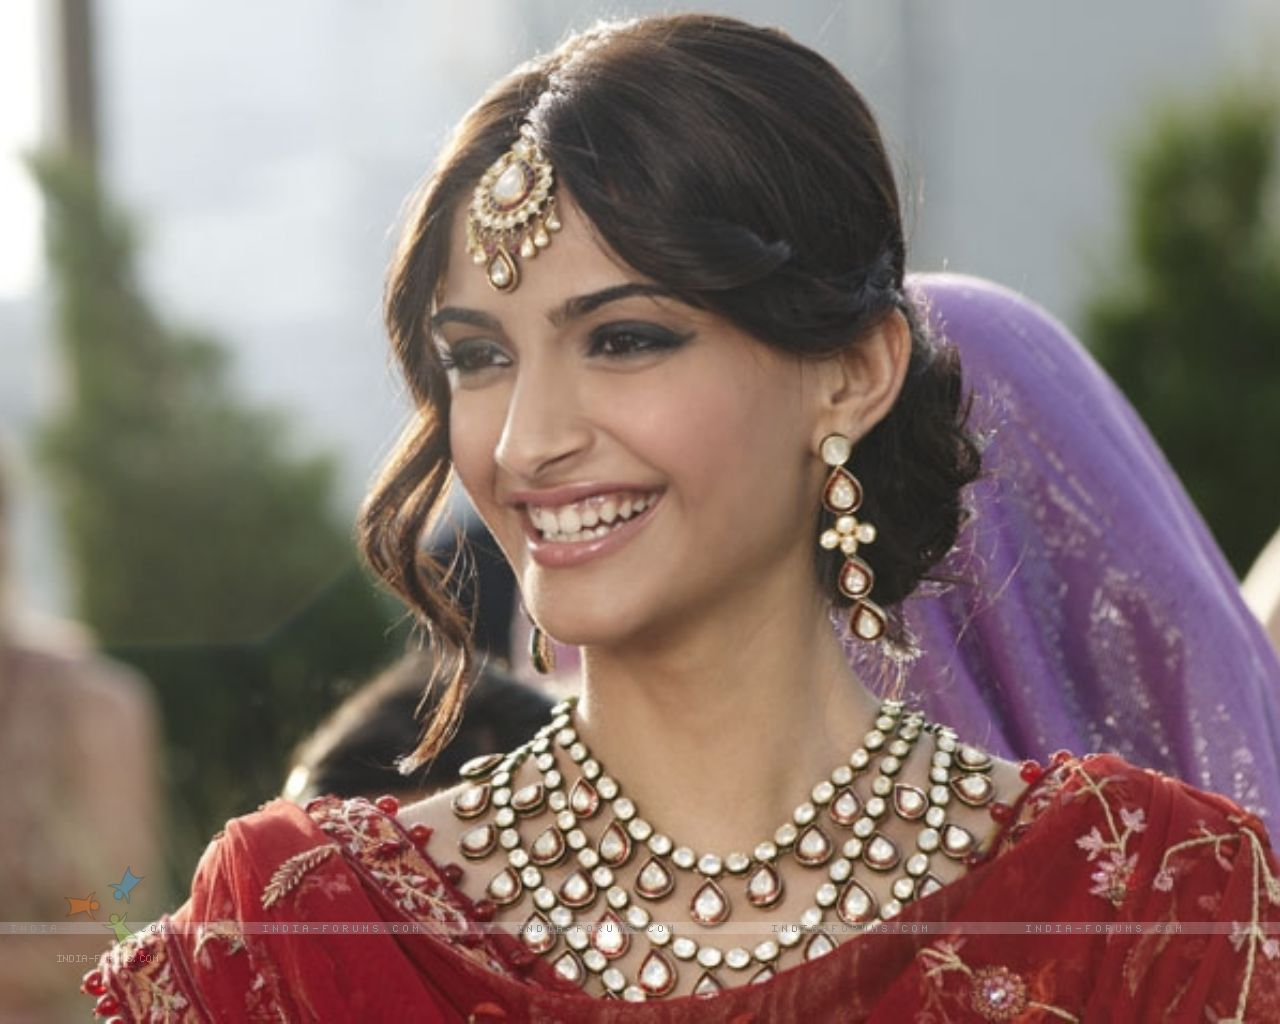 Movie Hub Sonam Kapoor Hot Gallery, Wallpapers, Gossips-5401